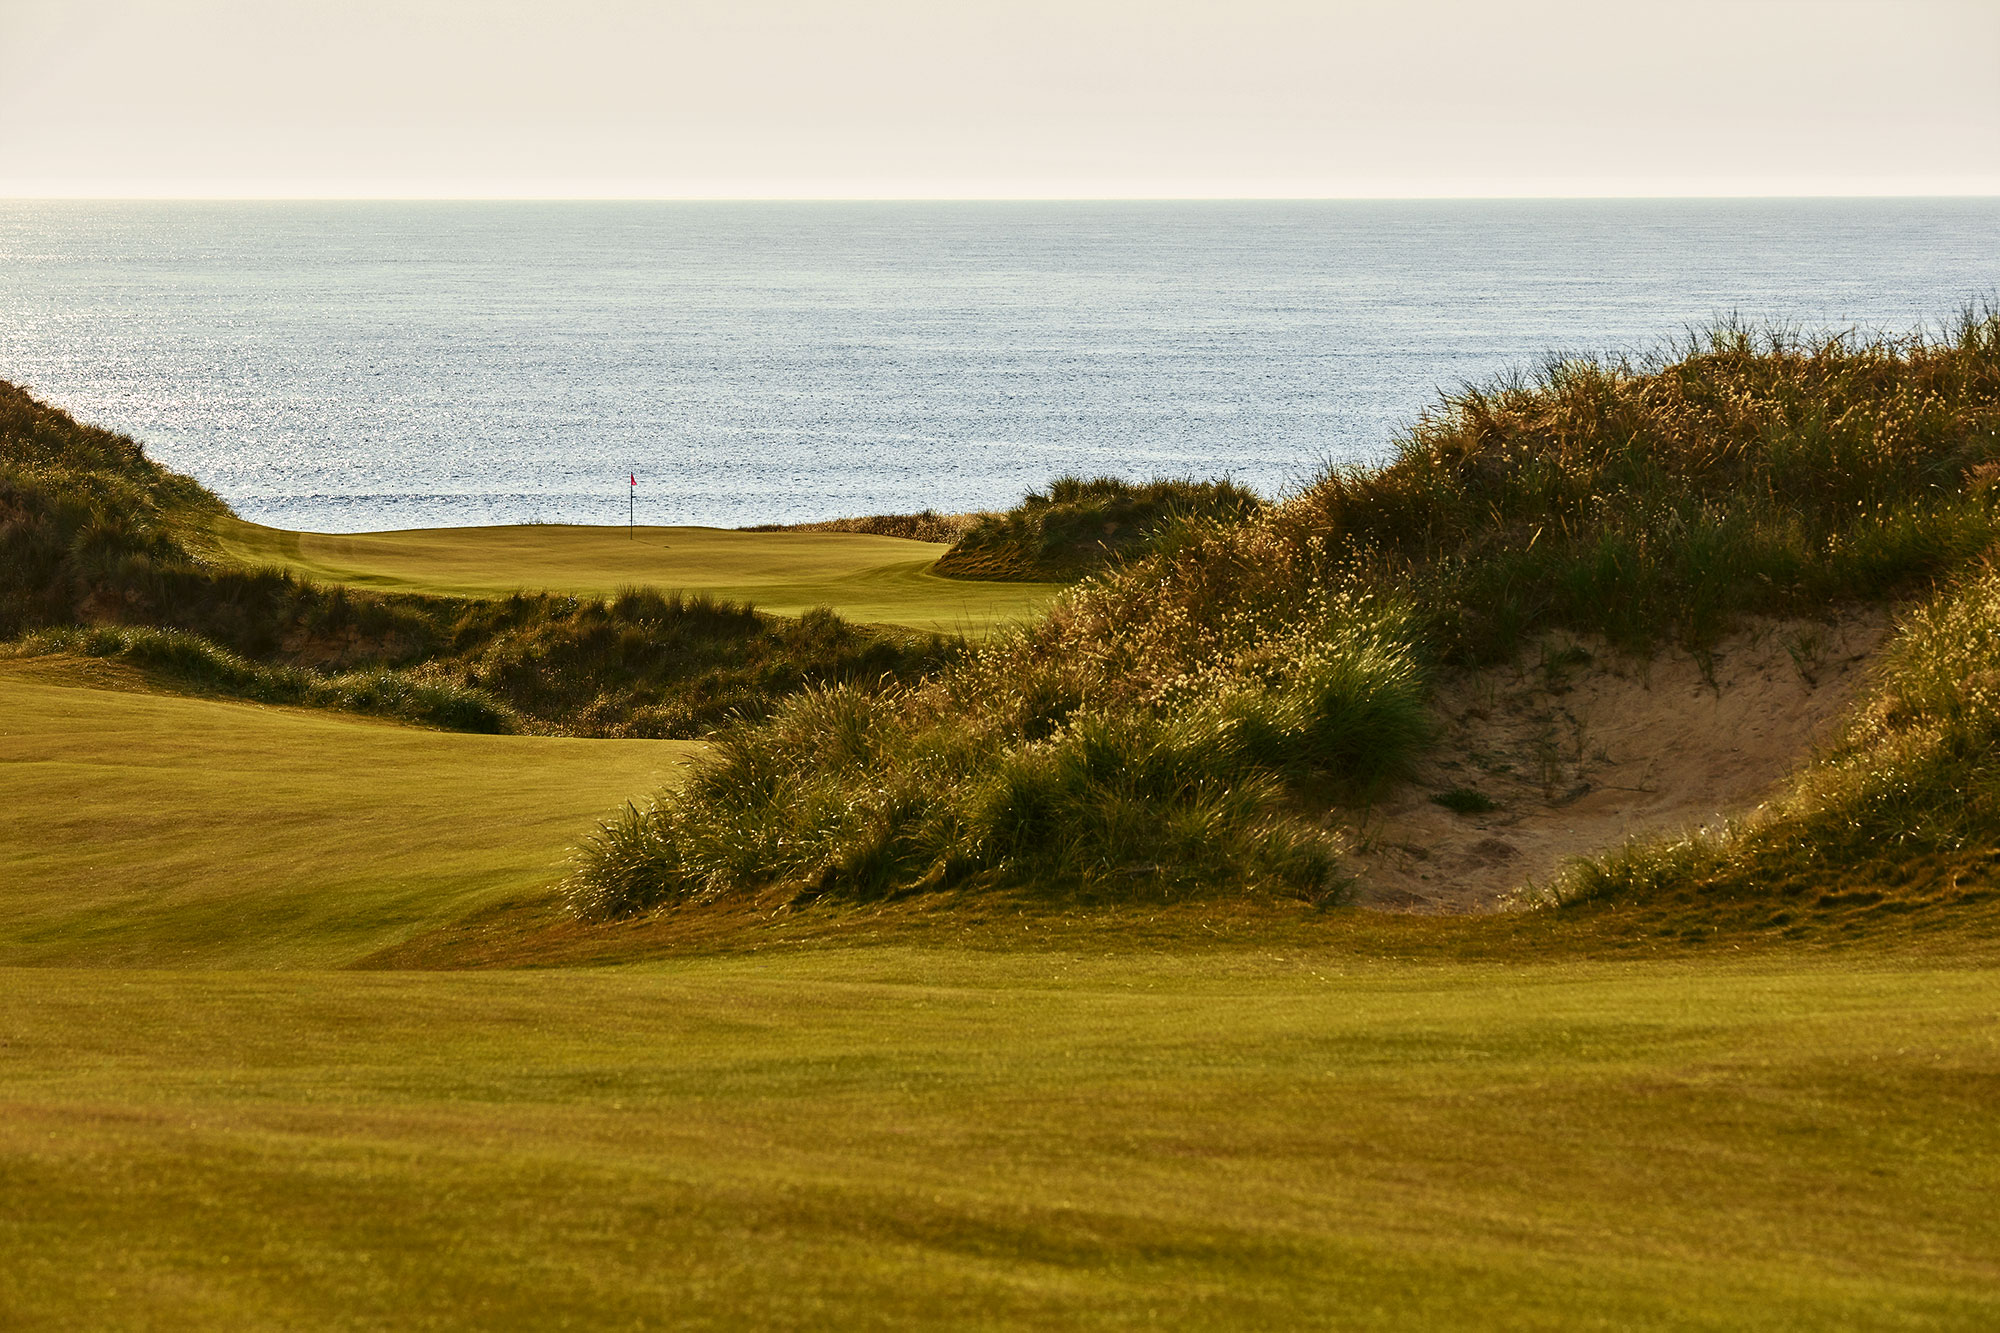 Cape Wickham - Stephen Denton Photography, Los Angeles, California based interior & hospitality photographer